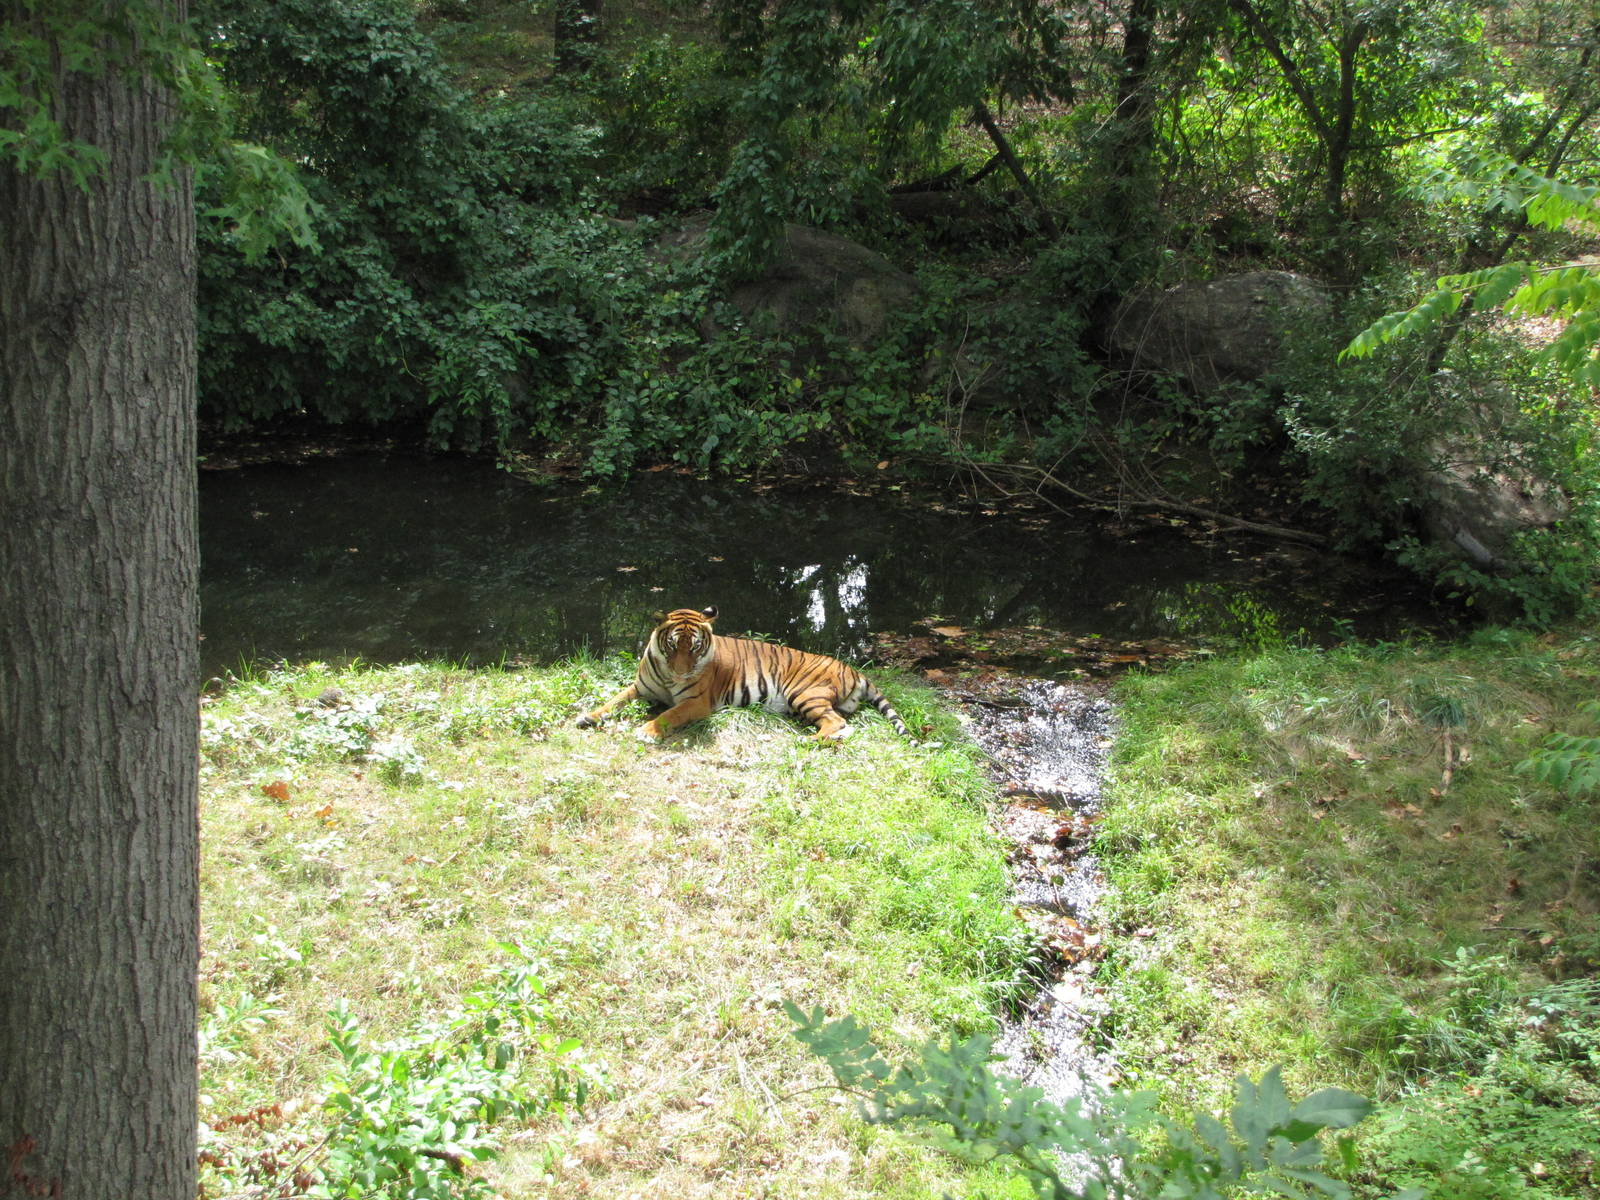 Bronx Zoo Tiger Mountain Zoochat - Year of Clean Water